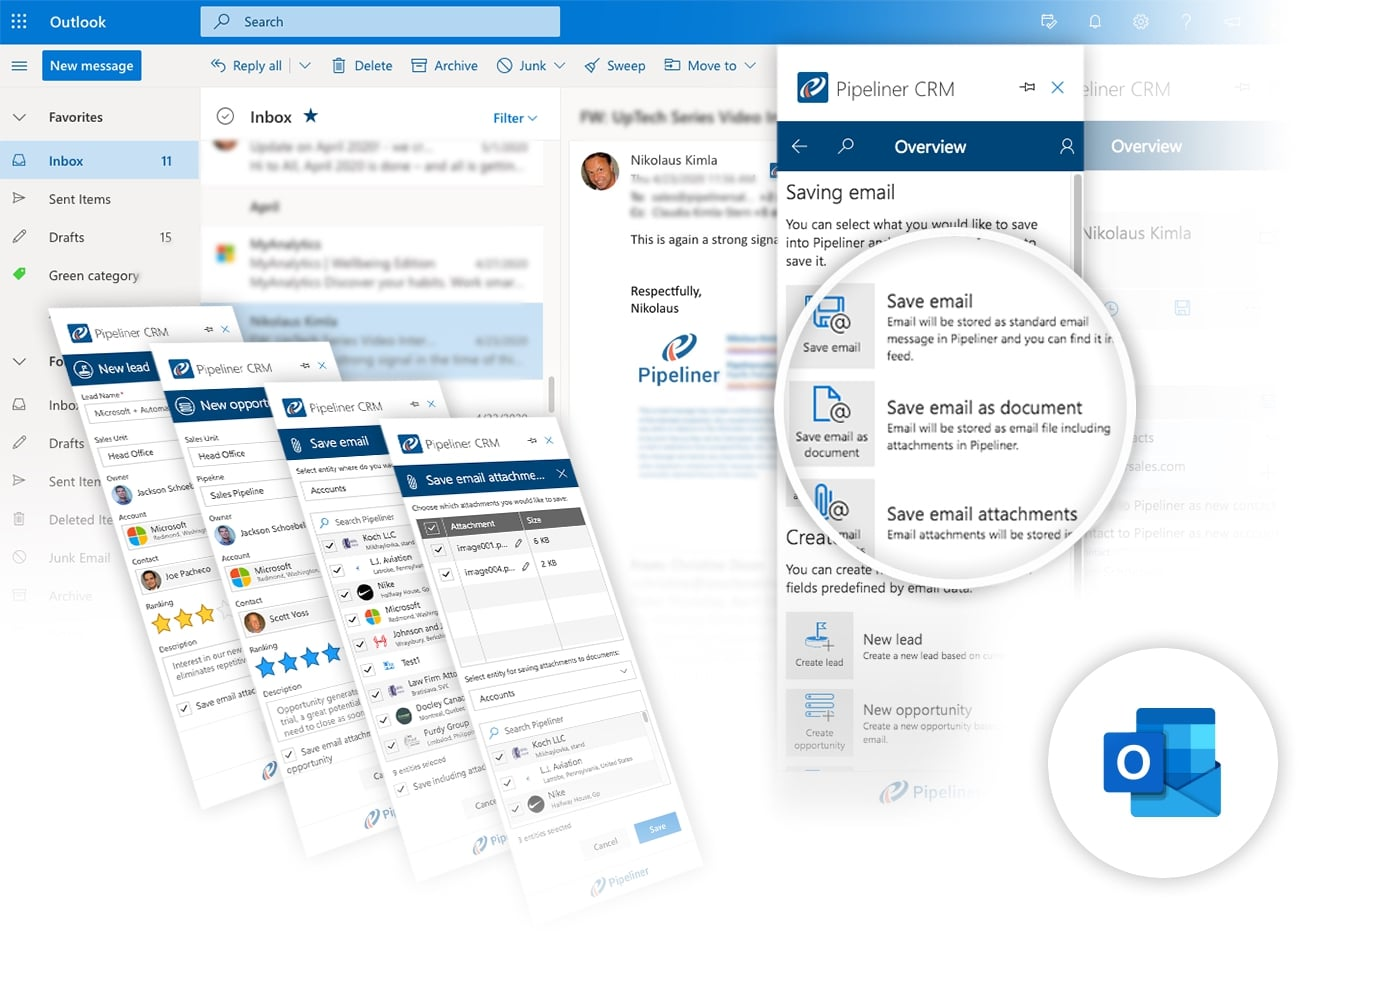 Microsoft 365 Outlook Inbox Add-In integration with Pipeliner CRM